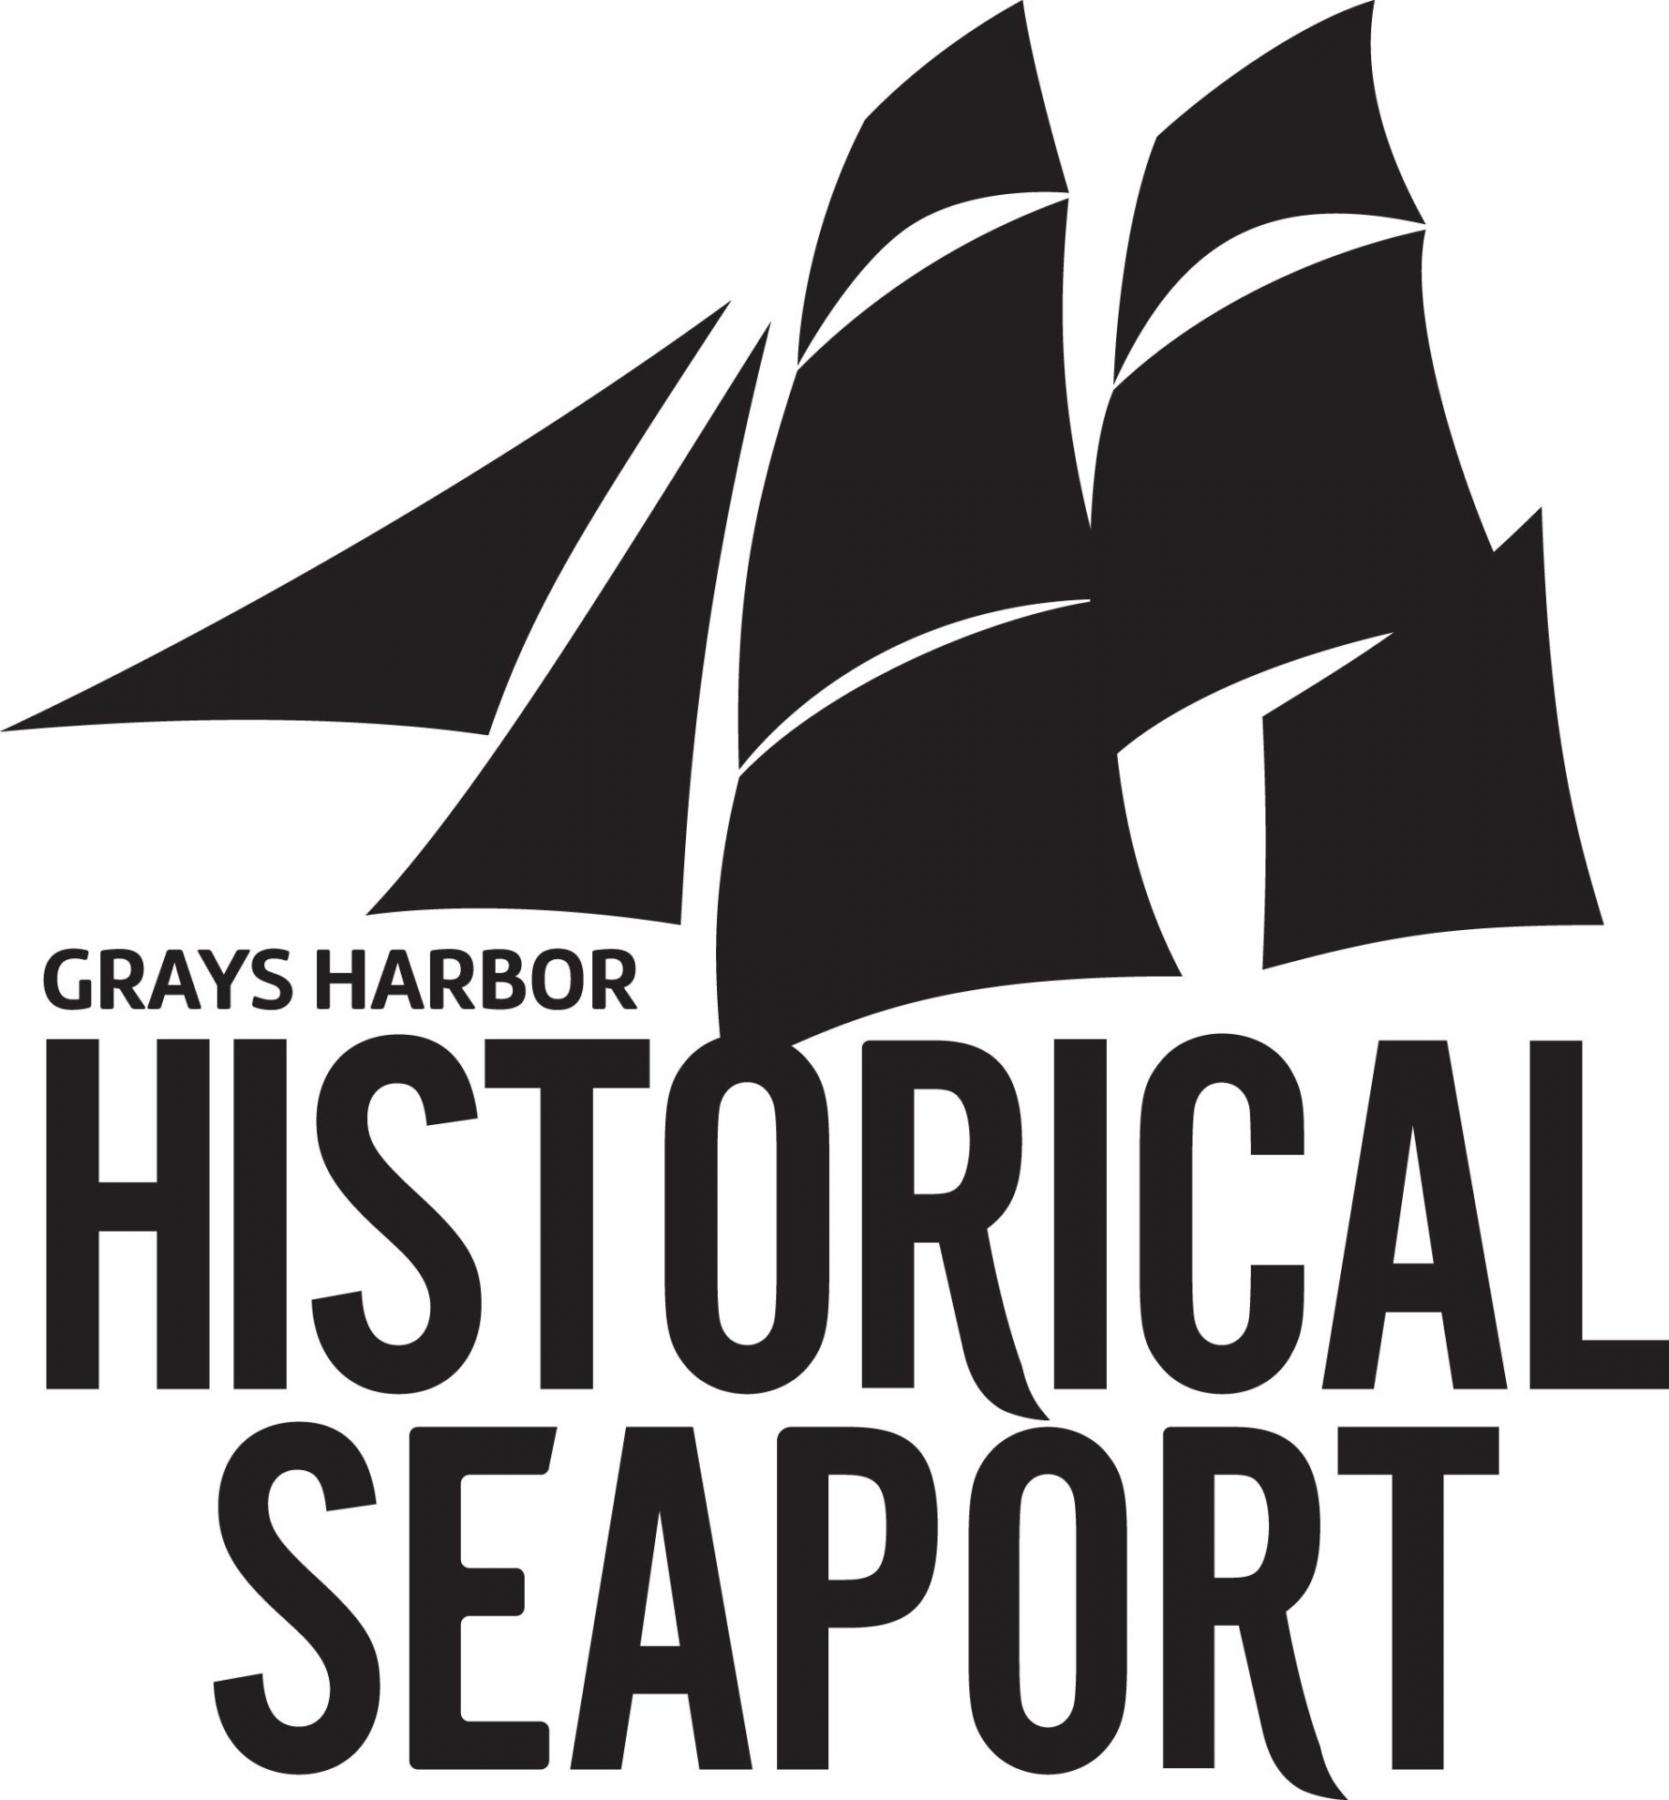 Grays Harbor Historical Seaport Logo